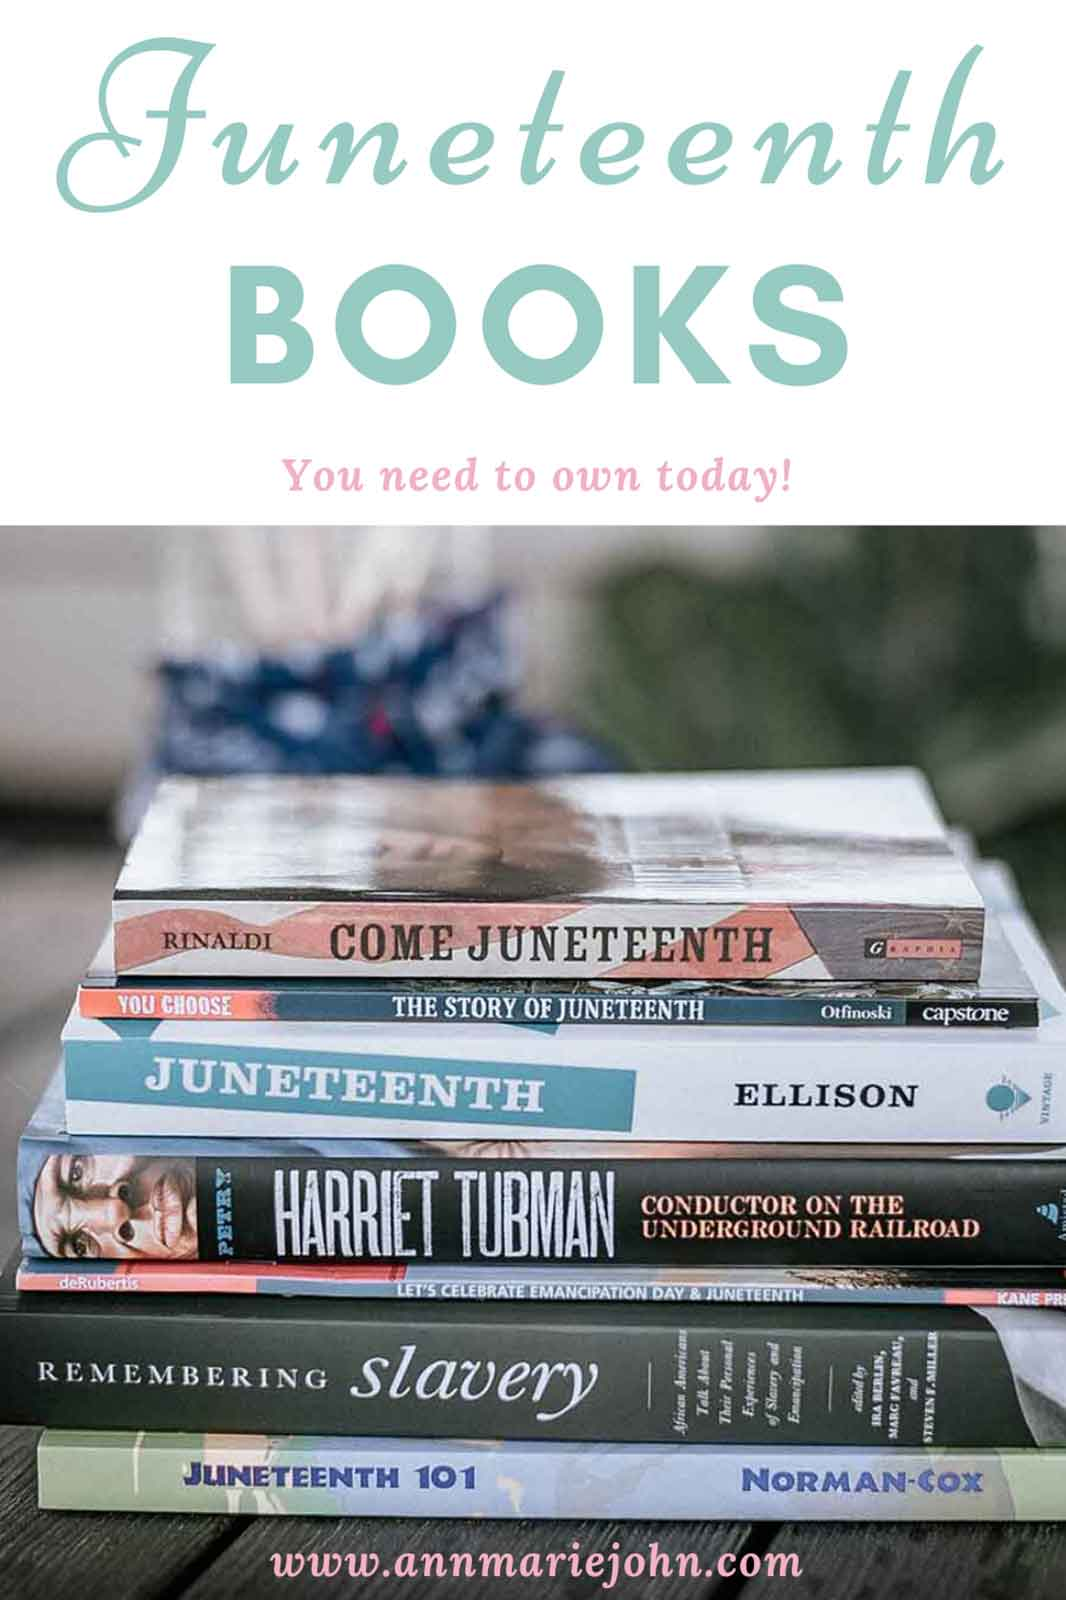 Juneteenth Books You Need to Own Today